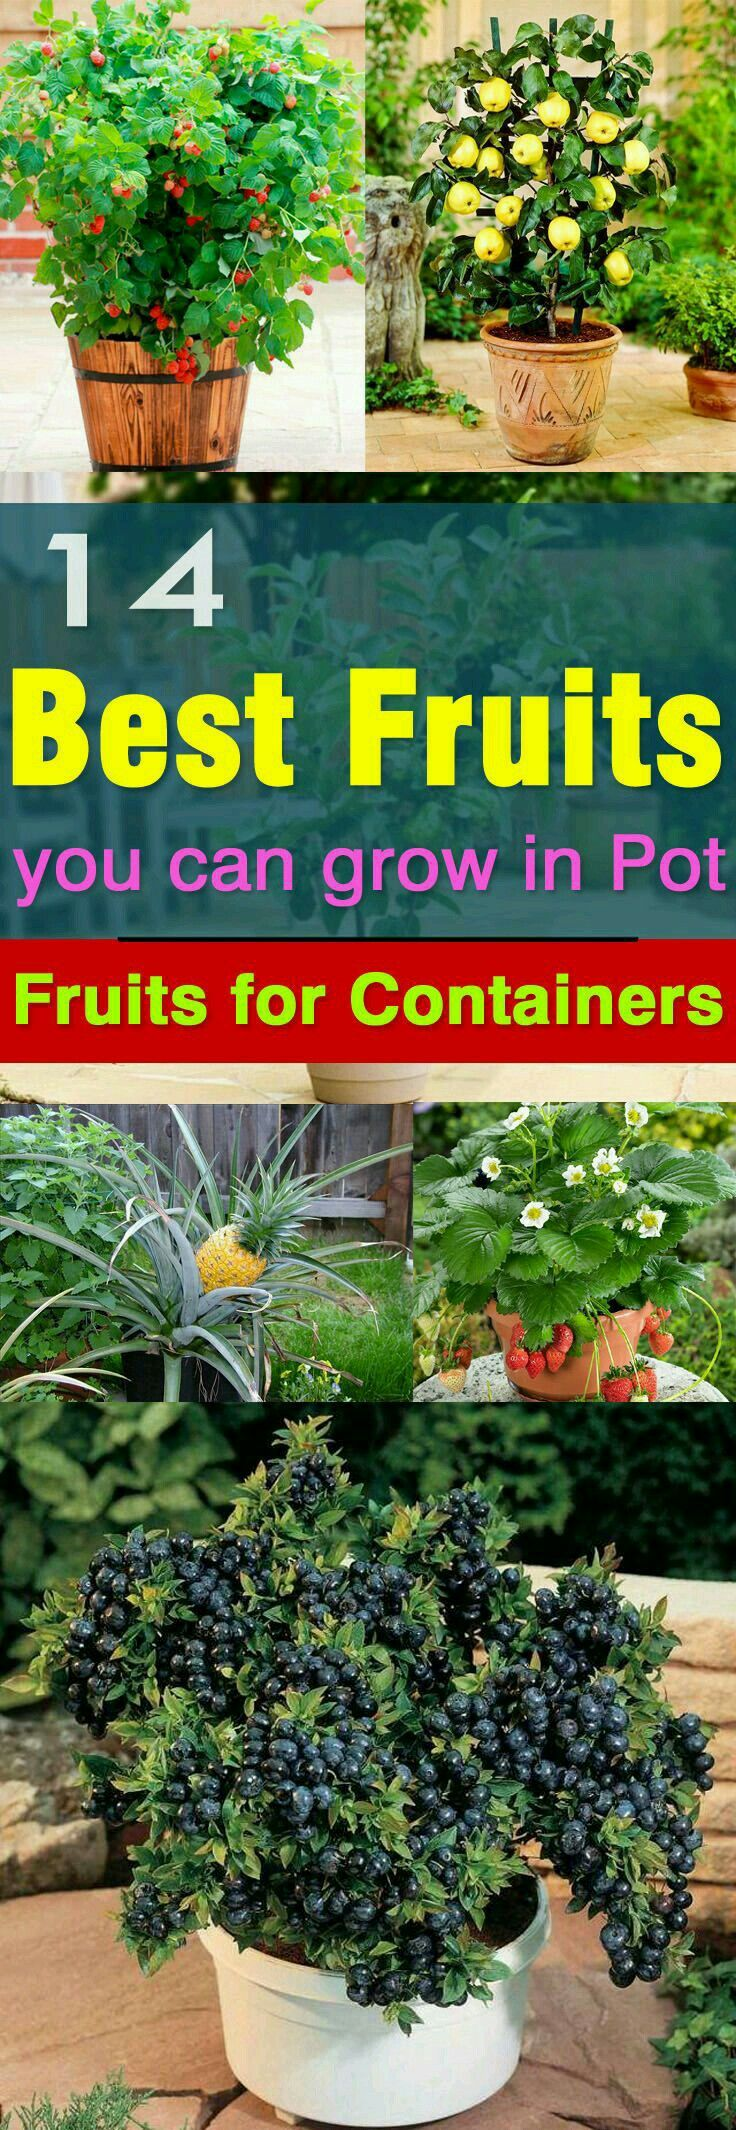 Kitchen Garden Plants 17 Best Ideas About Vegetable Gardening On Pinterest Gardening